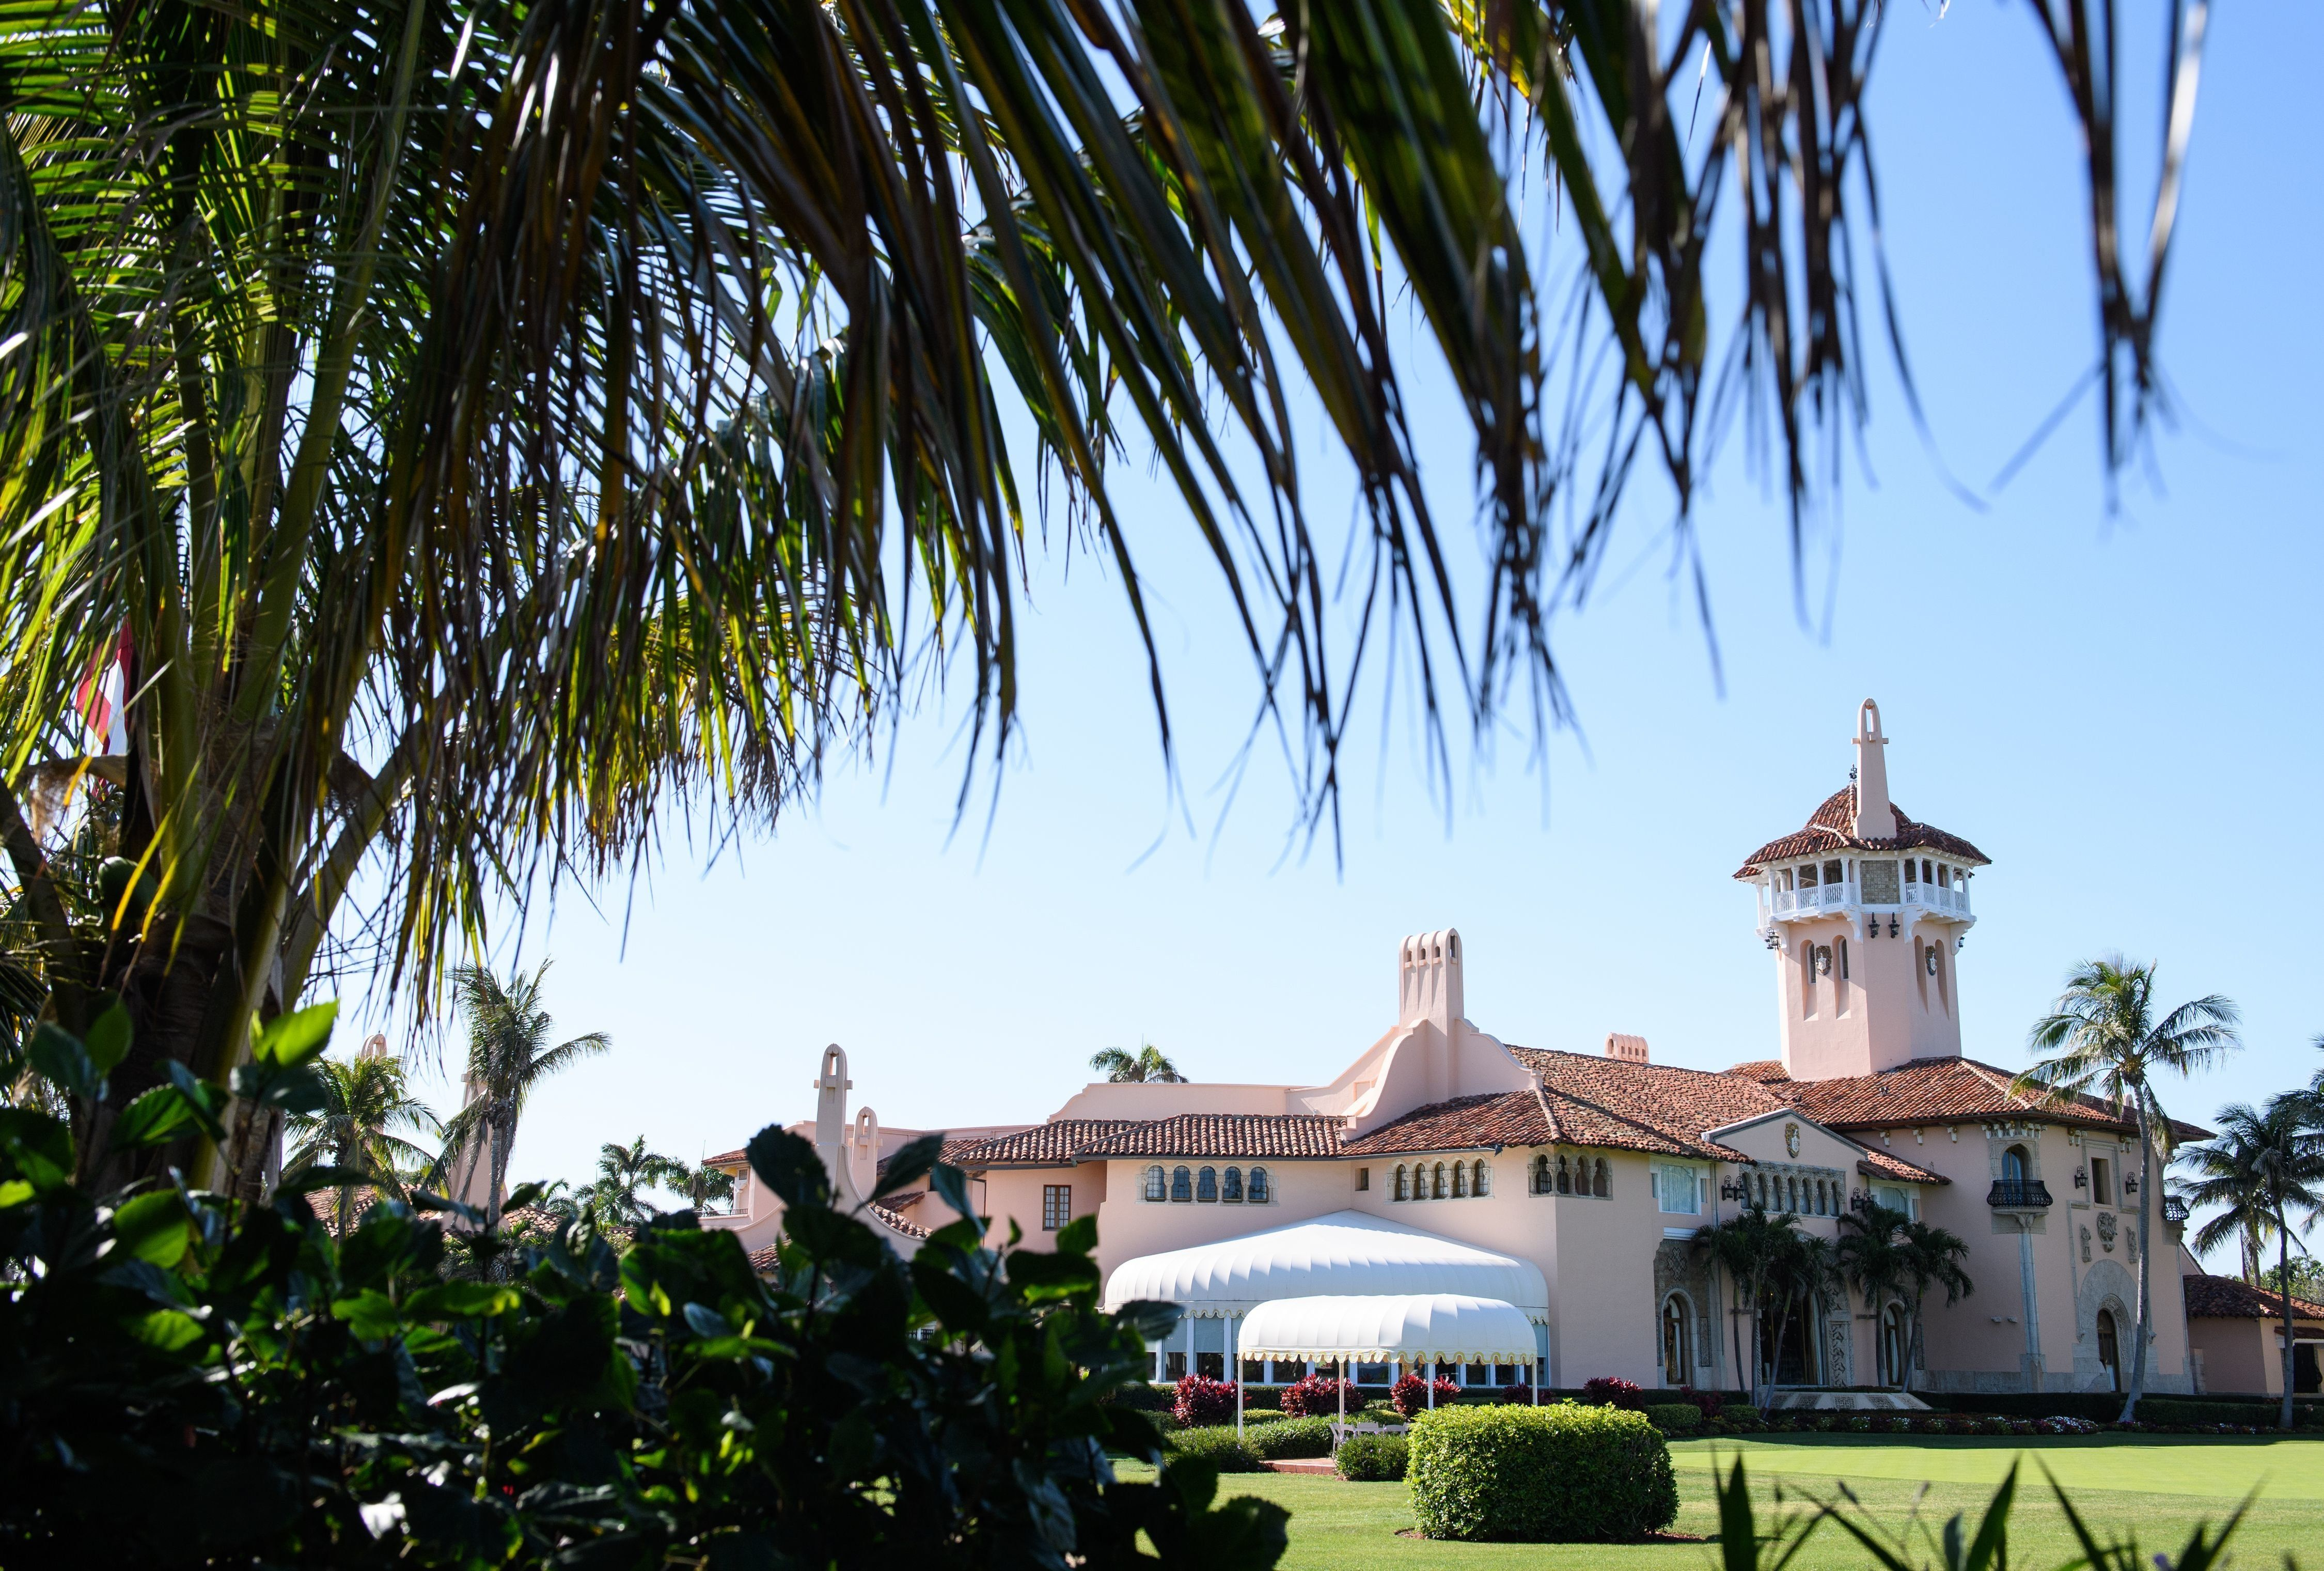 Veterans Sue Over Reported Troika Of VA Shadow Rulers From Mar-a-Lago